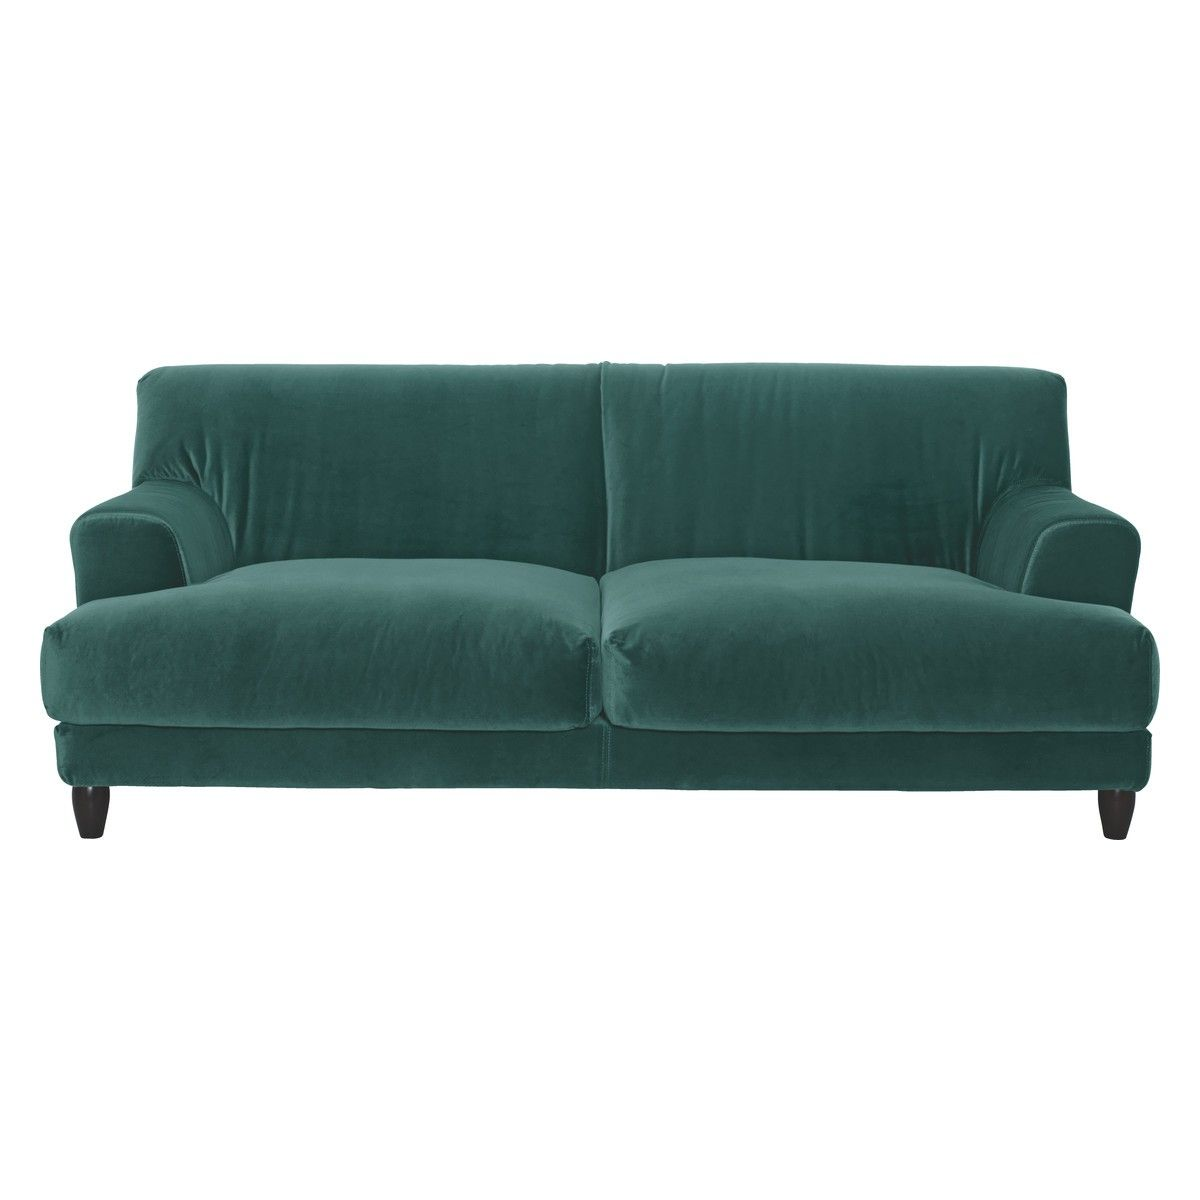 ASKEM Emerald Green Velvet 3 Seater Sofa